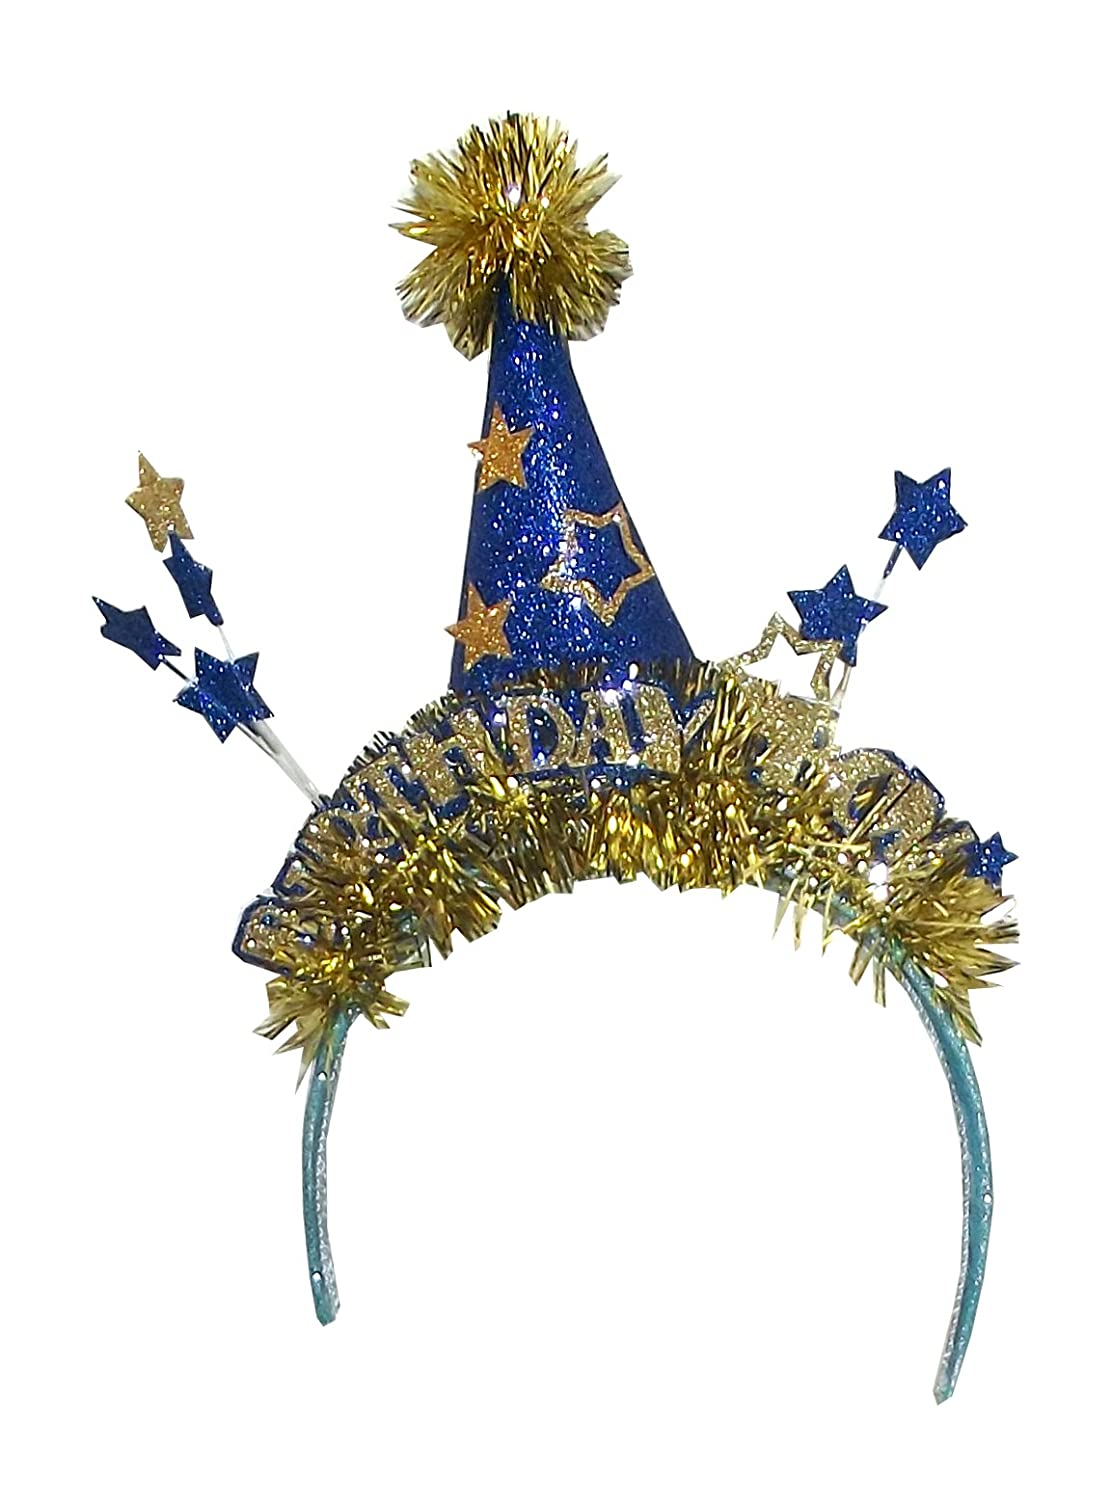 Amazon One Hundred 80 Degrees Royal Birthday Party Hat Headband Size Jester Boy Health Personal Care